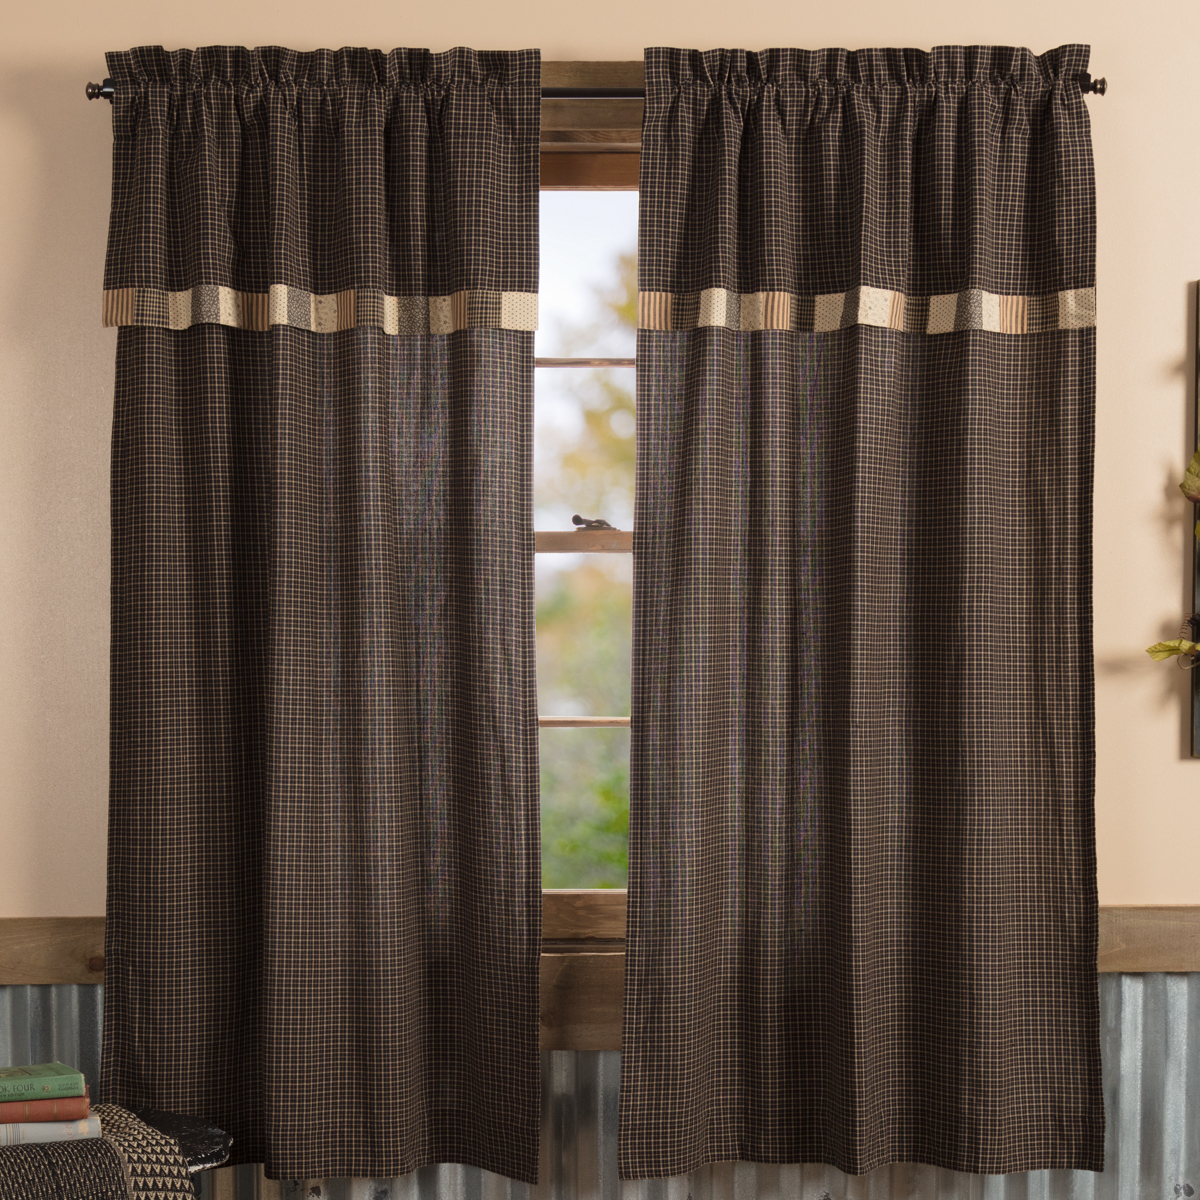 Kettle Grove Short Panel with Attached Valance Block Border Set of 2 63x36